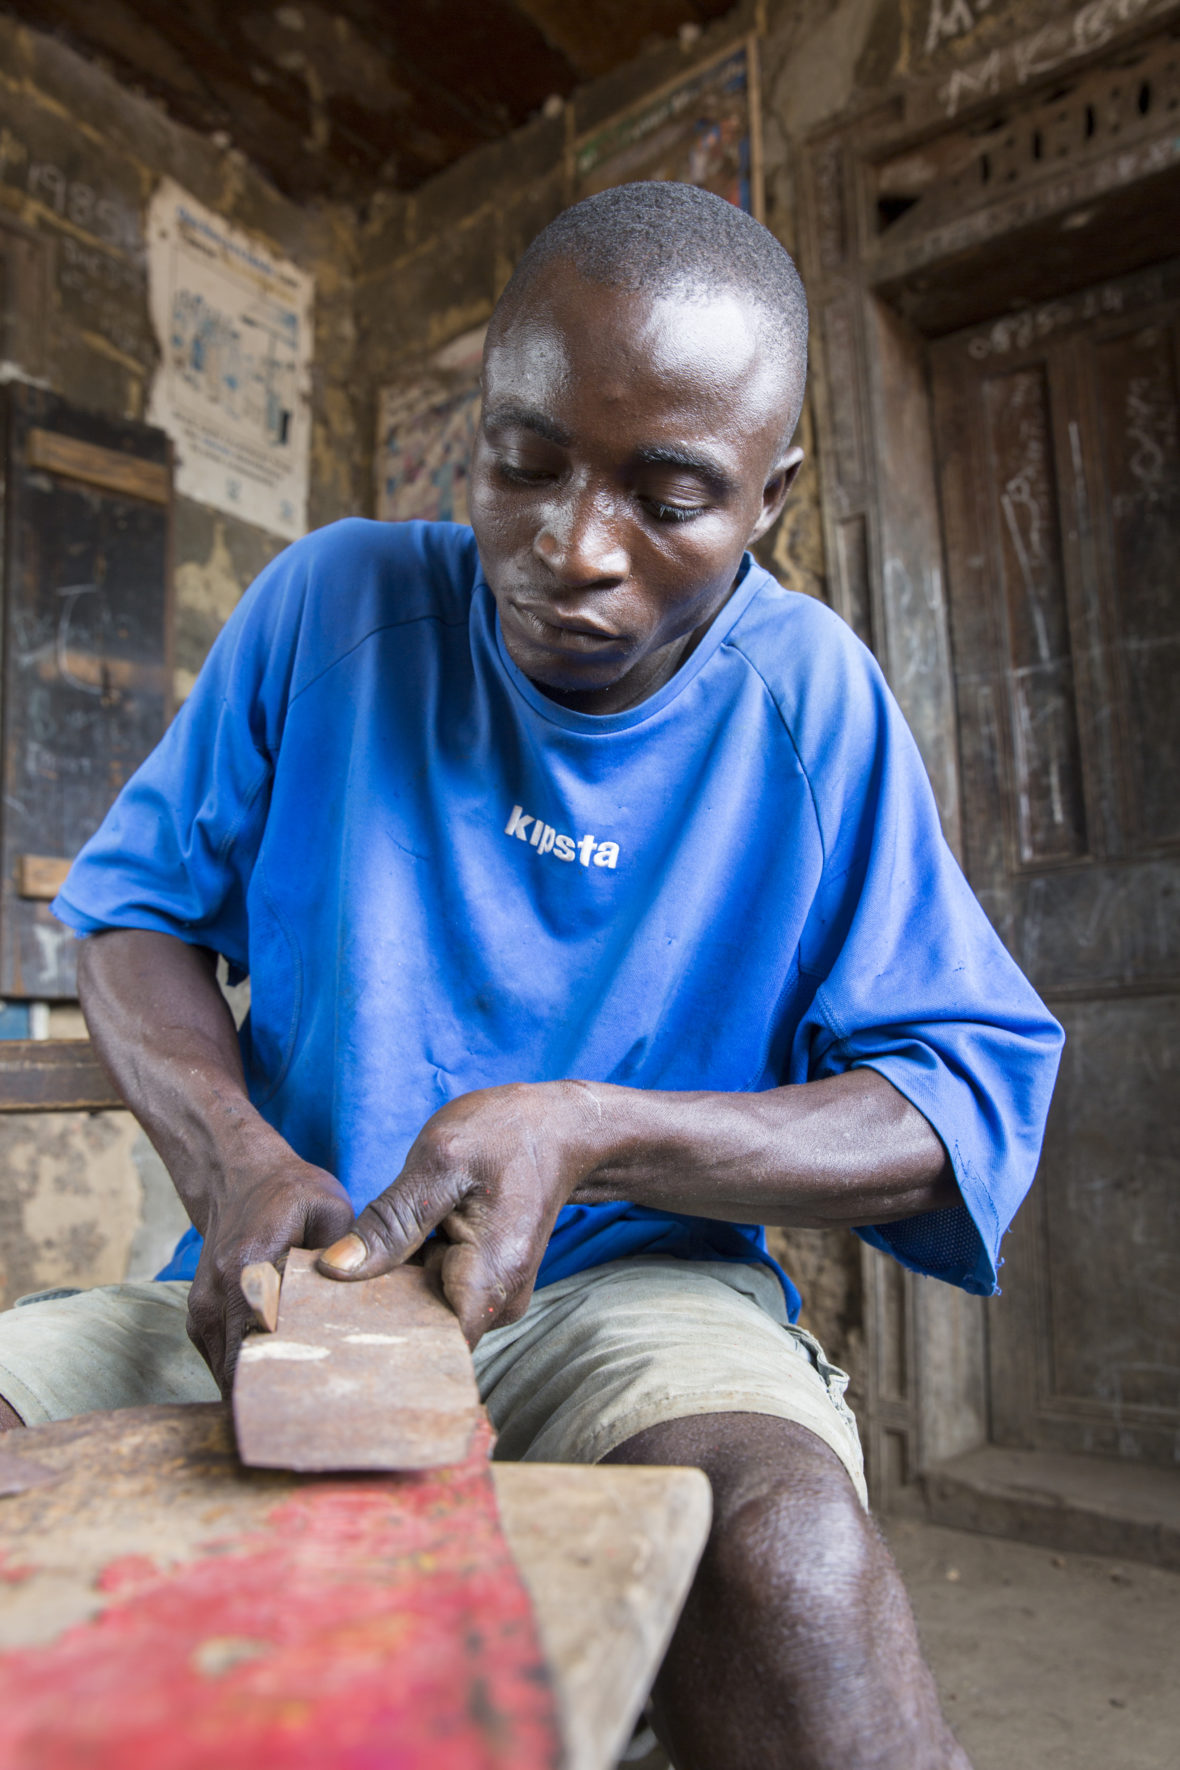 Man sitting at table, working on shaping a piece of metal with a tool